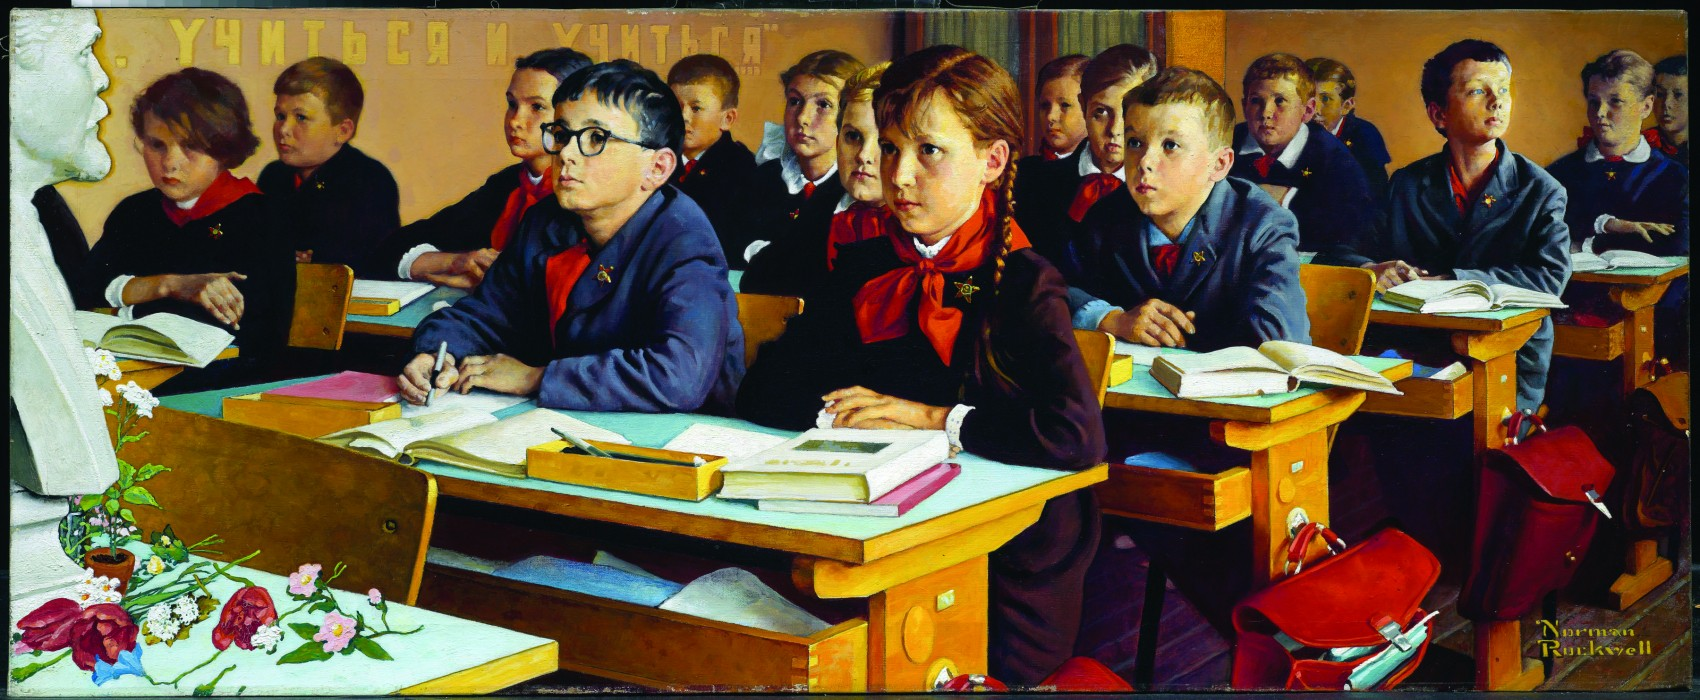 Russian School Room1967- Norman Rockwell